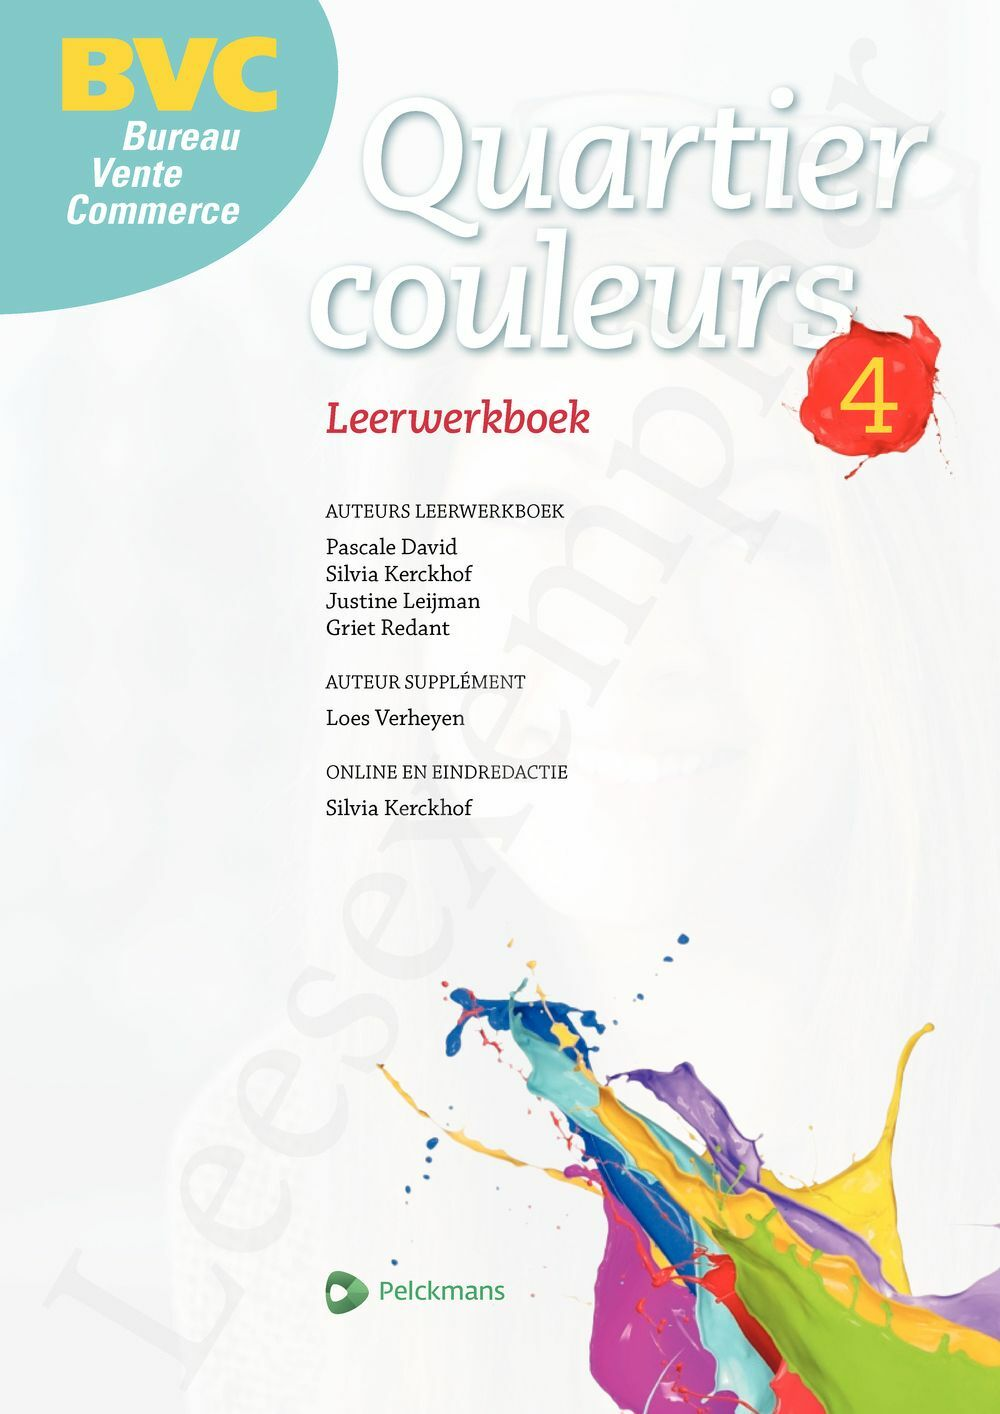 Preview: Quartier couleurs 4 BVC leerwerkboek